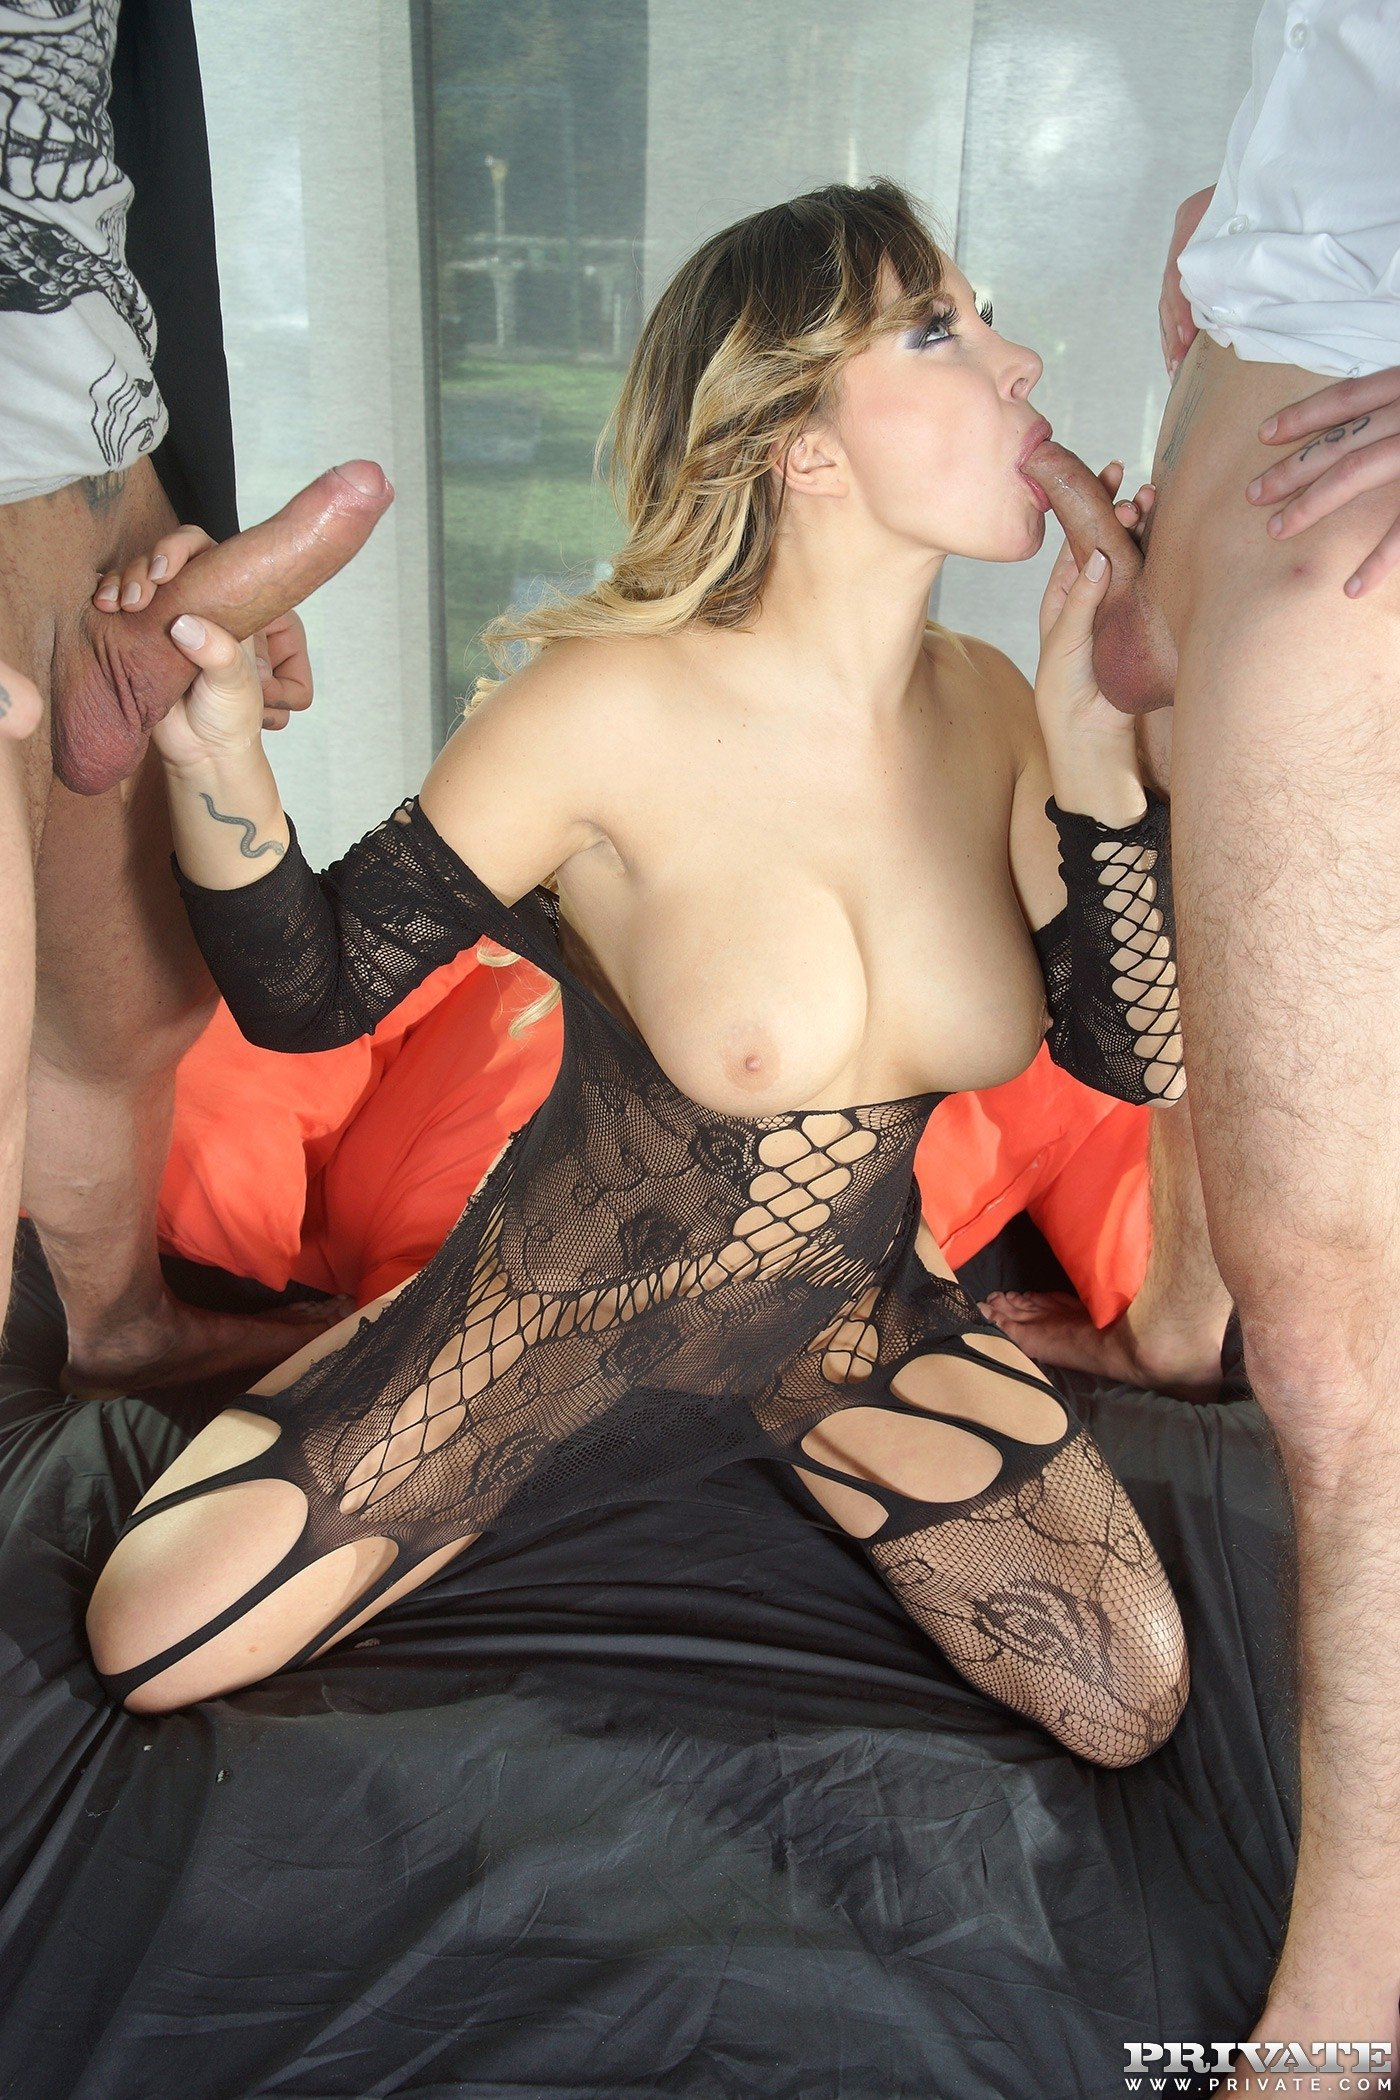 Teacher gangbang me Video sxce com